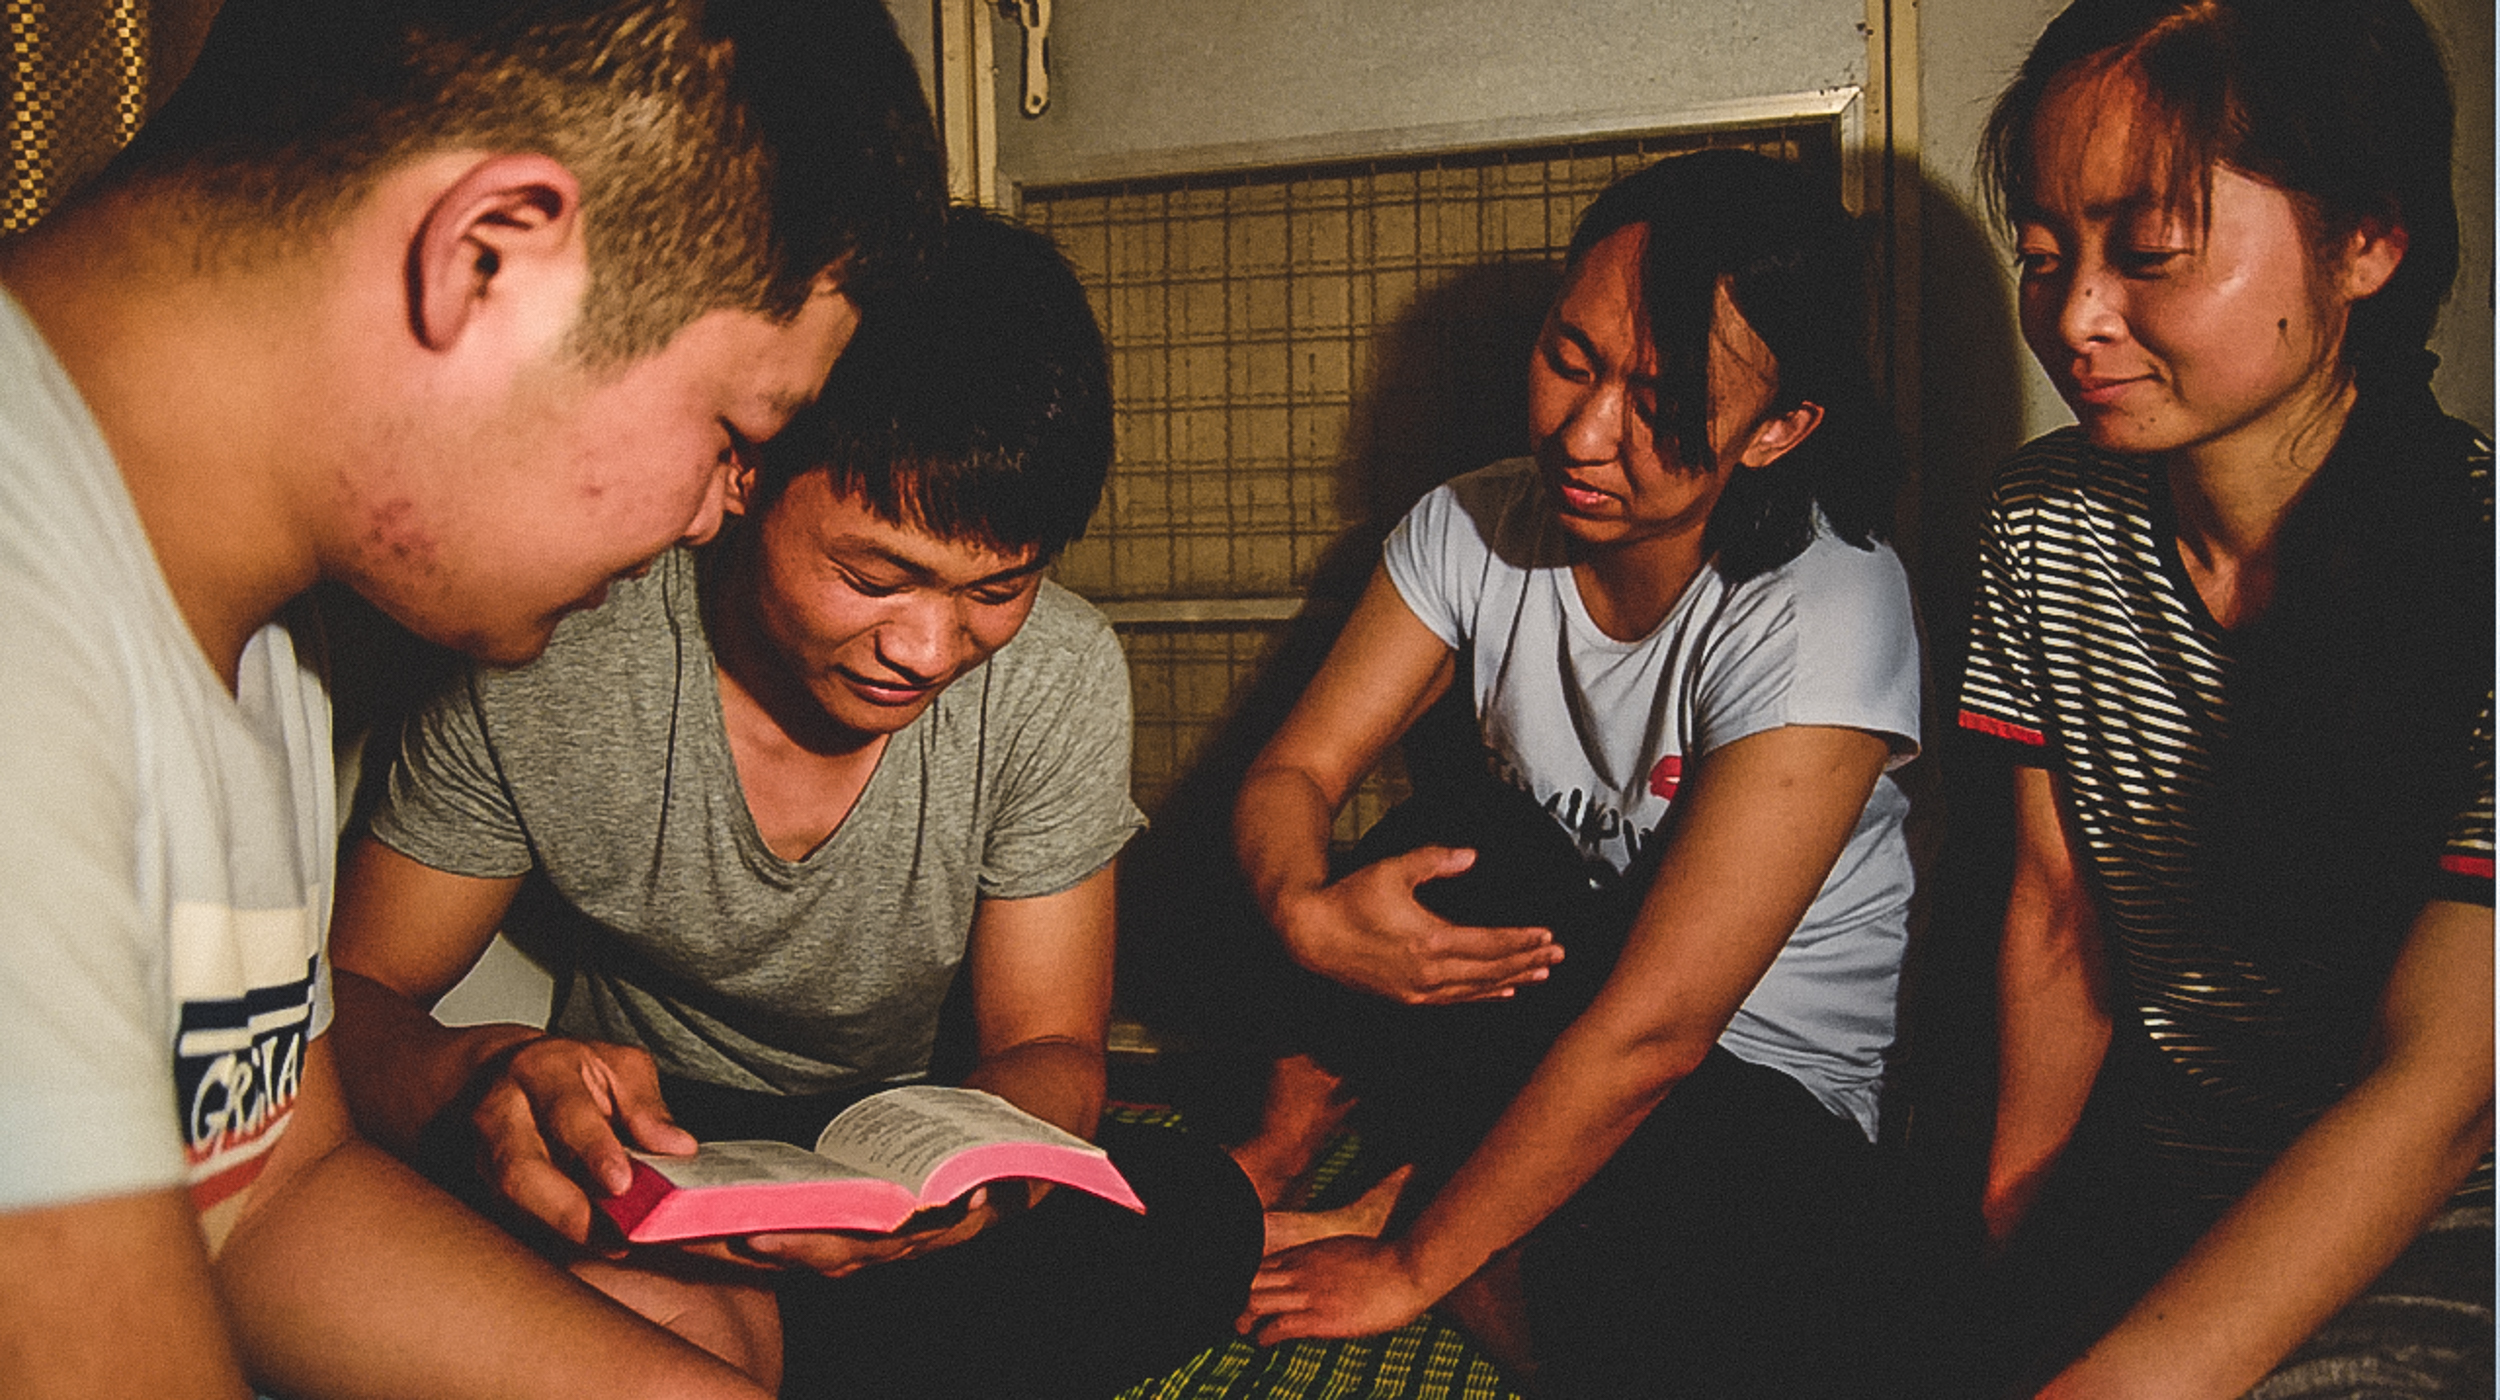 BIBLES - Approximately 50% of Christians in China lack a copy of God's precious Word. Even if they have the money, it is very difficult to locate and then purchase a Bible in China. This is a picture of a new Christian in China receiving a Bible. Having a copy of God's Word will grow his faith, bring joy to his life and equip him to share the good news with others. For just $3.00 per Bible, you can give a copy of God's Word to a Chinese believer.